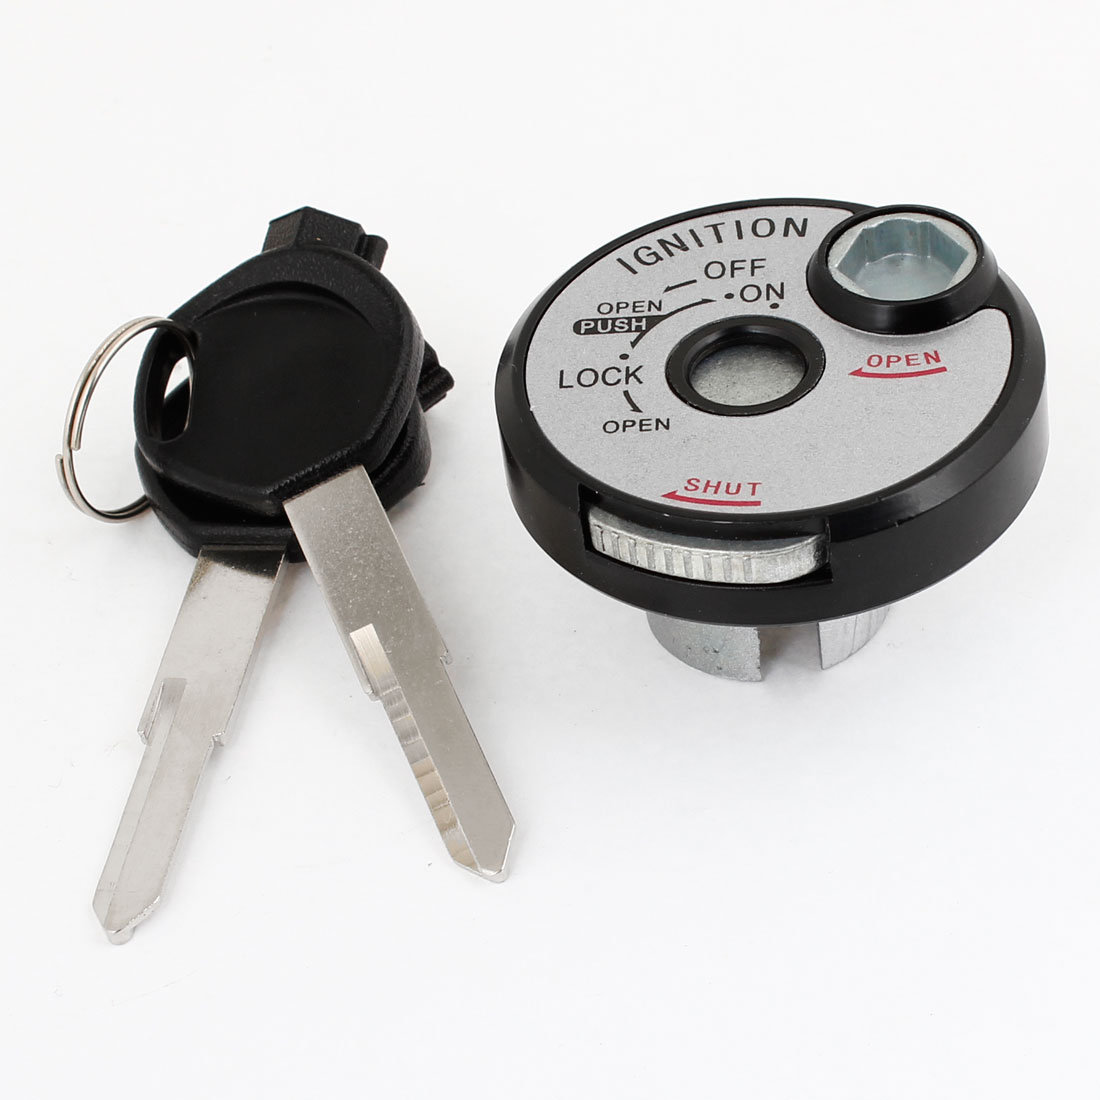 Motorcycle Motorbike Lock-Off-On Type 2 Position Ignition Switch w Dual Keys